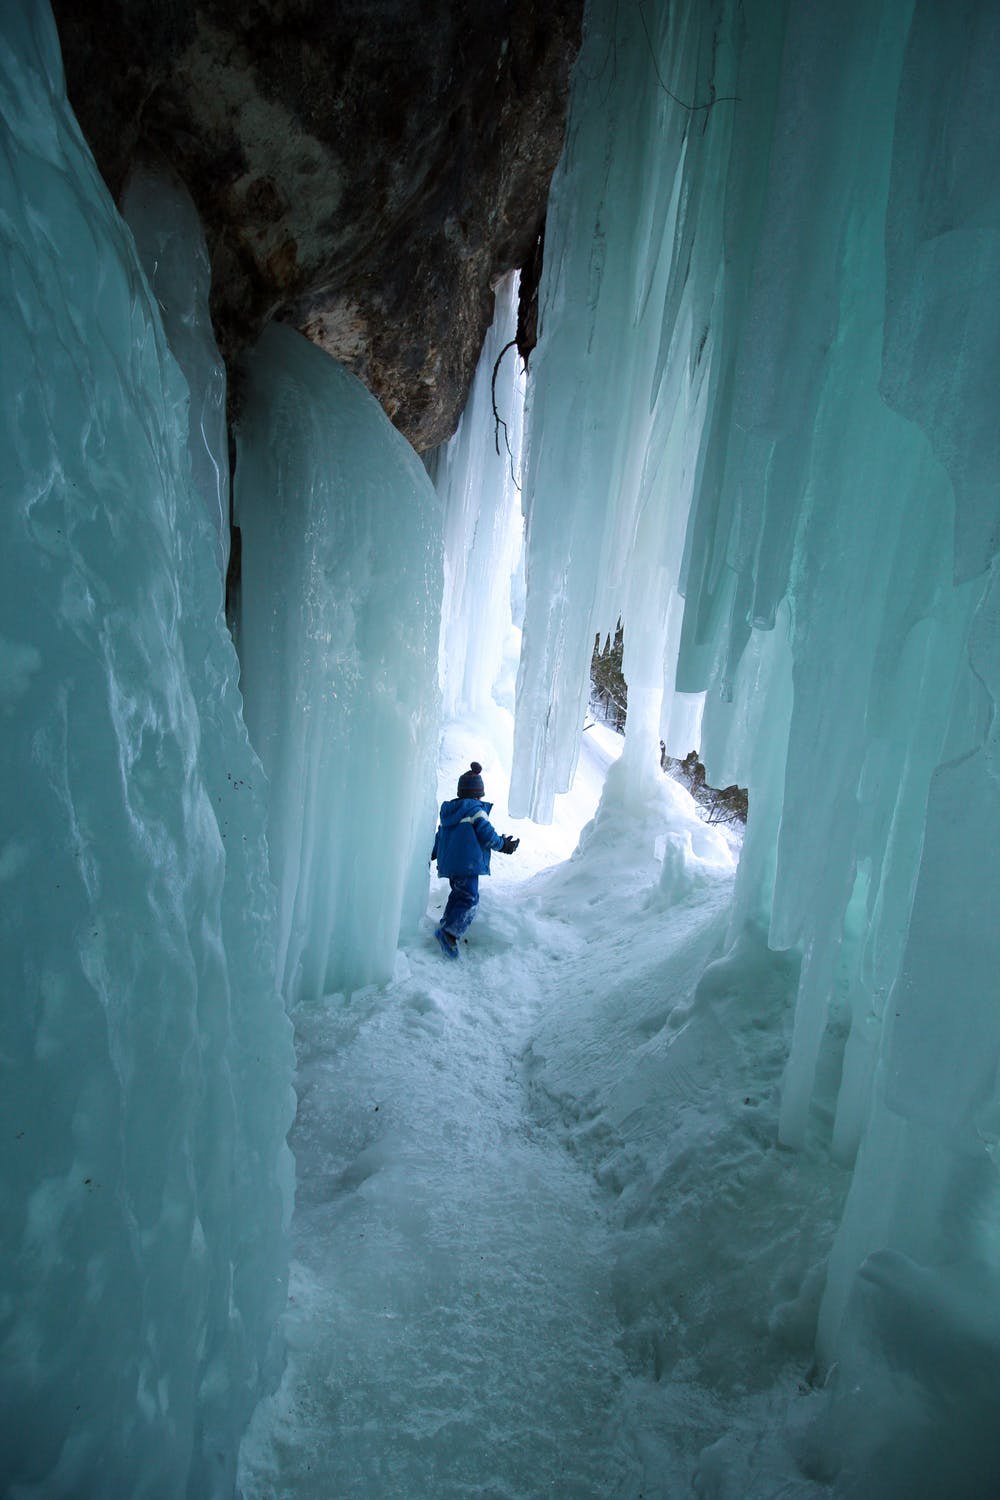 The Ice Cave: Is It Safe To Drive On It?